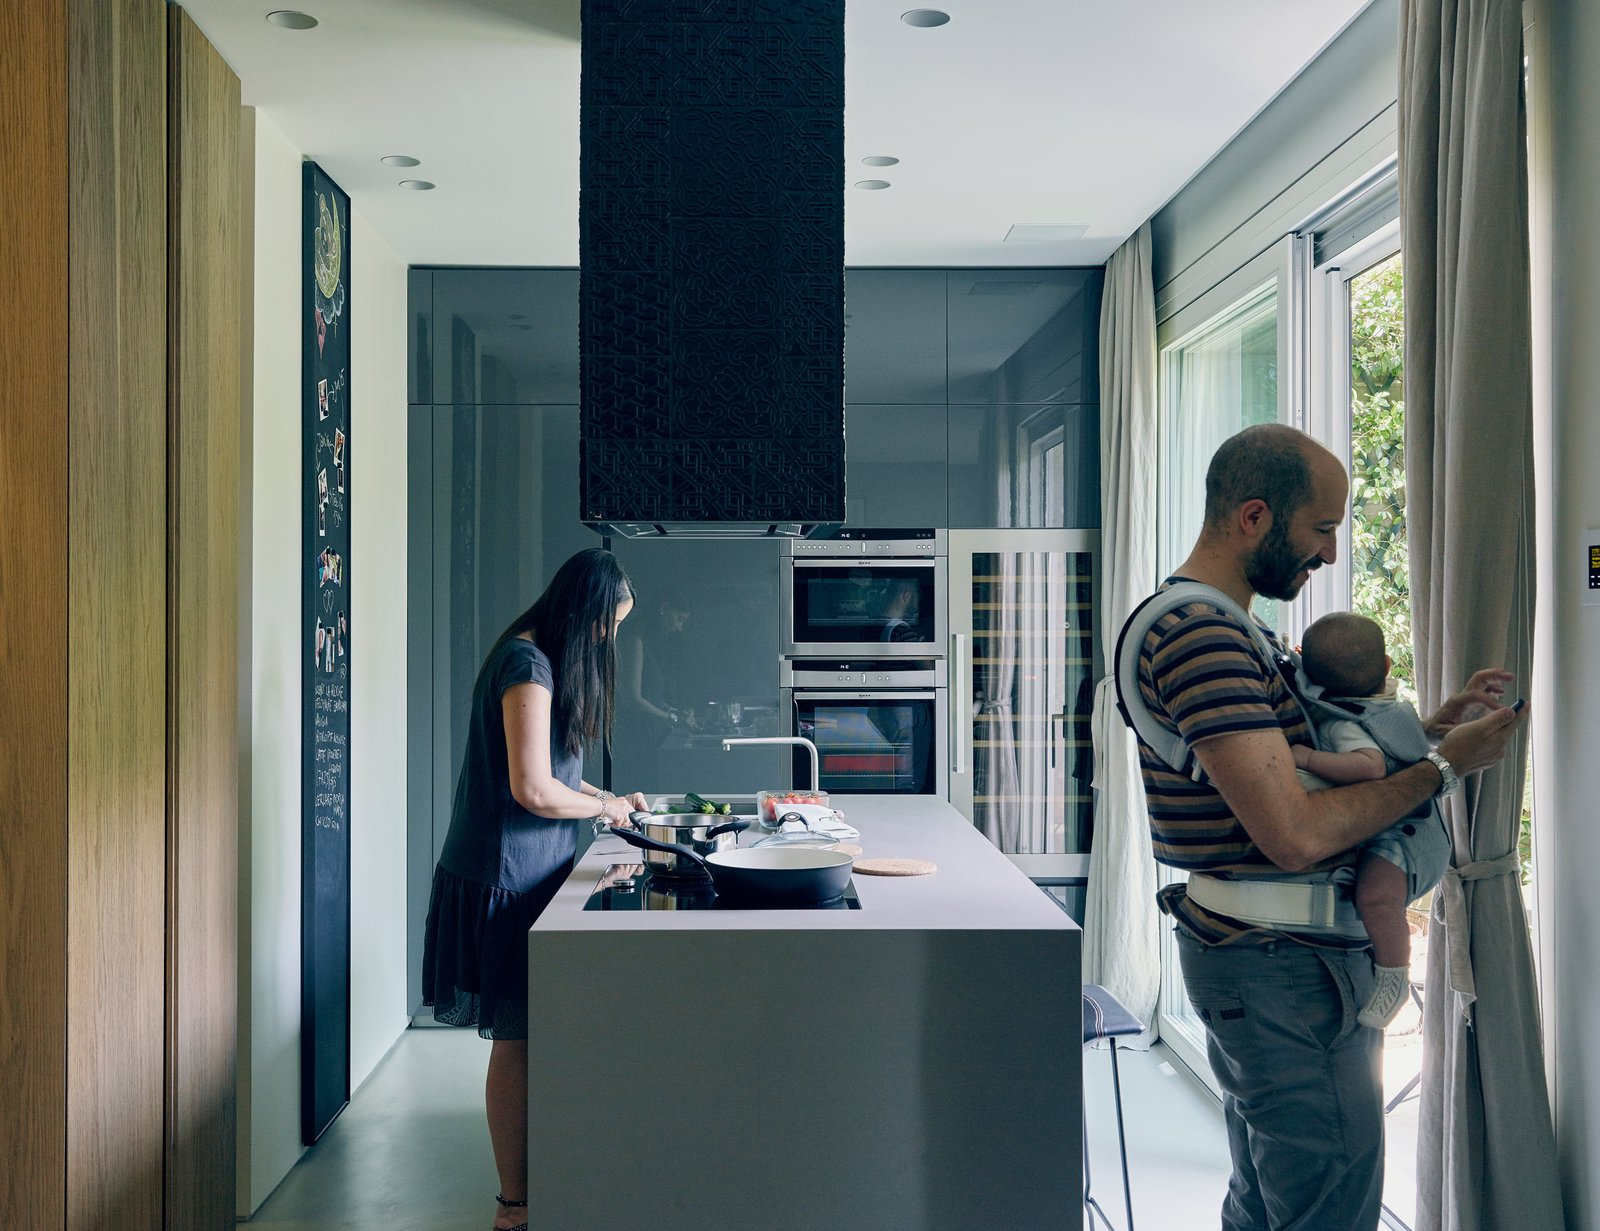 Kitchen, Refrigerator, Wall Oven, Cooktops, Range, Range Hood, Wine Cooler, Ceiling Lighting, Recessed Lighting, and Concrete Floor In remodeling a compact Milan apartment, designers Roberto Di Stefano and Alessandro Bongiorni introduced sliding glass doors by Eclisse where a single door once stood to improve connection to the outdoors. In the brightened kitchen, a Comprex cabinet system pairs with Neff appliances. Domenico Mori tiles cover the range hood.  Photo 2 of 15 in This Growing Family Maximizes Every Last Inch in Their 850-Square-Foot Apartment